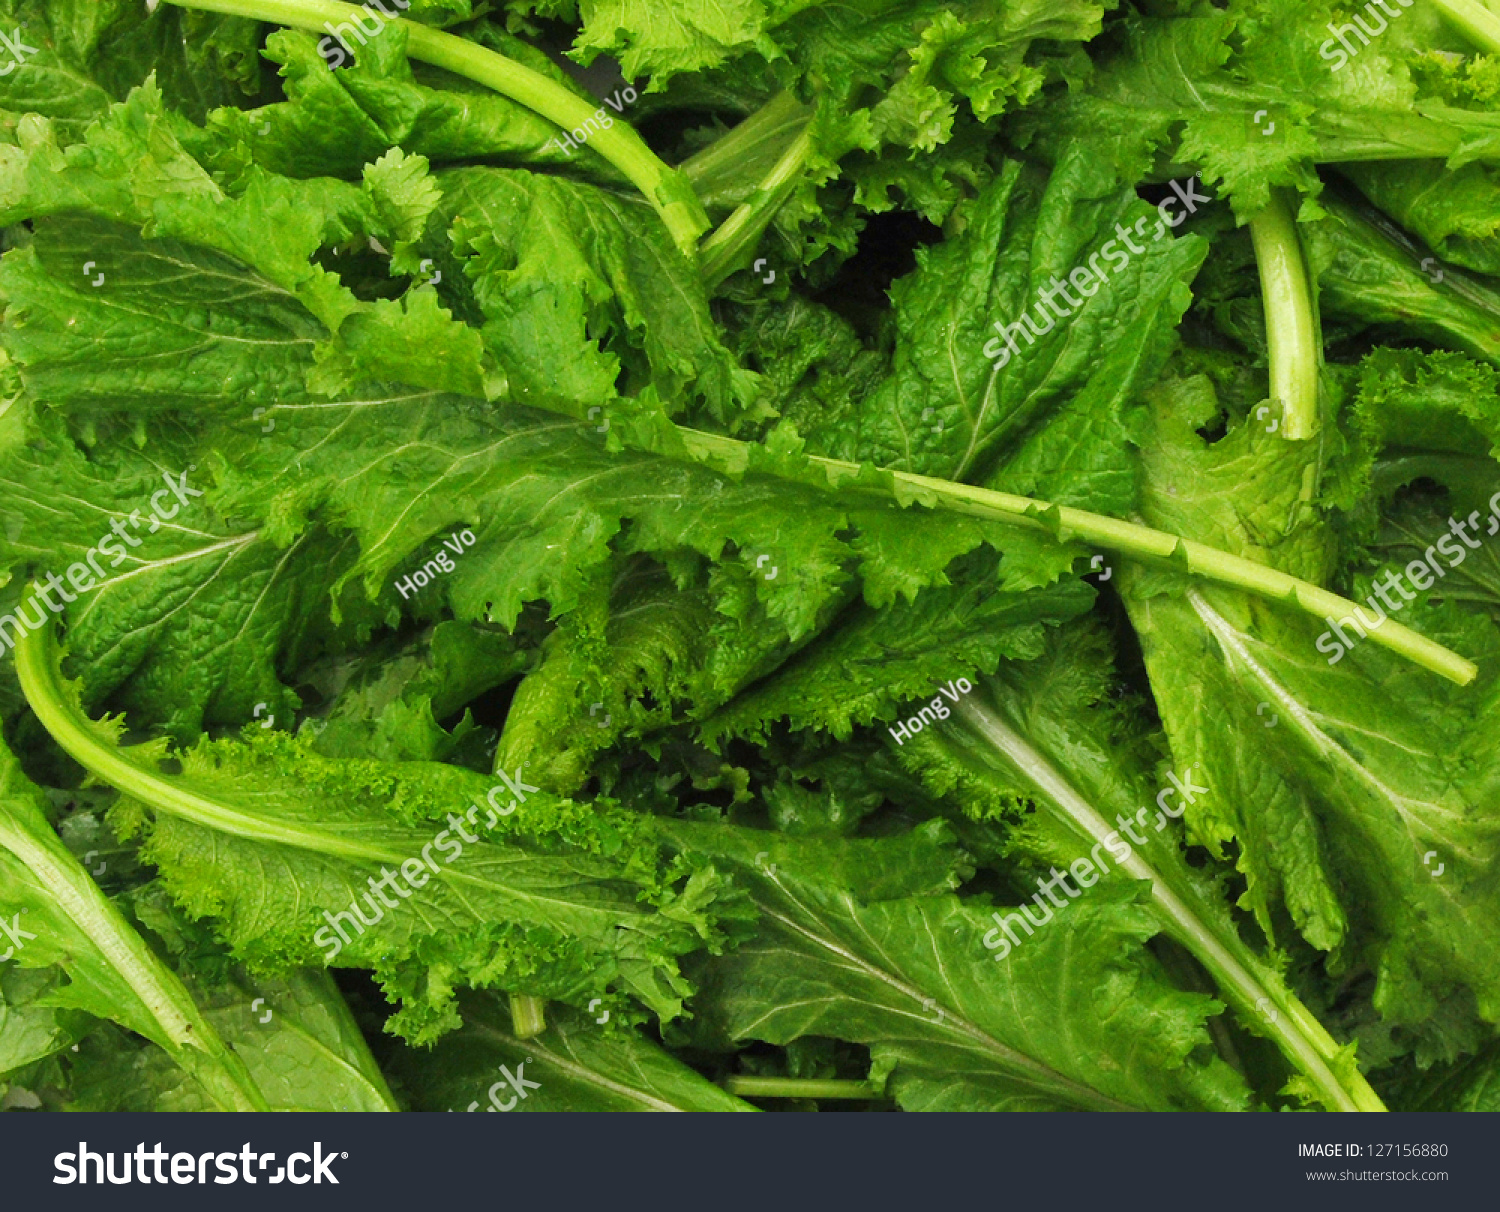 Fresh Curly Mustard Green Leaves On Background Stock Photo 127156880 : Shutterstock